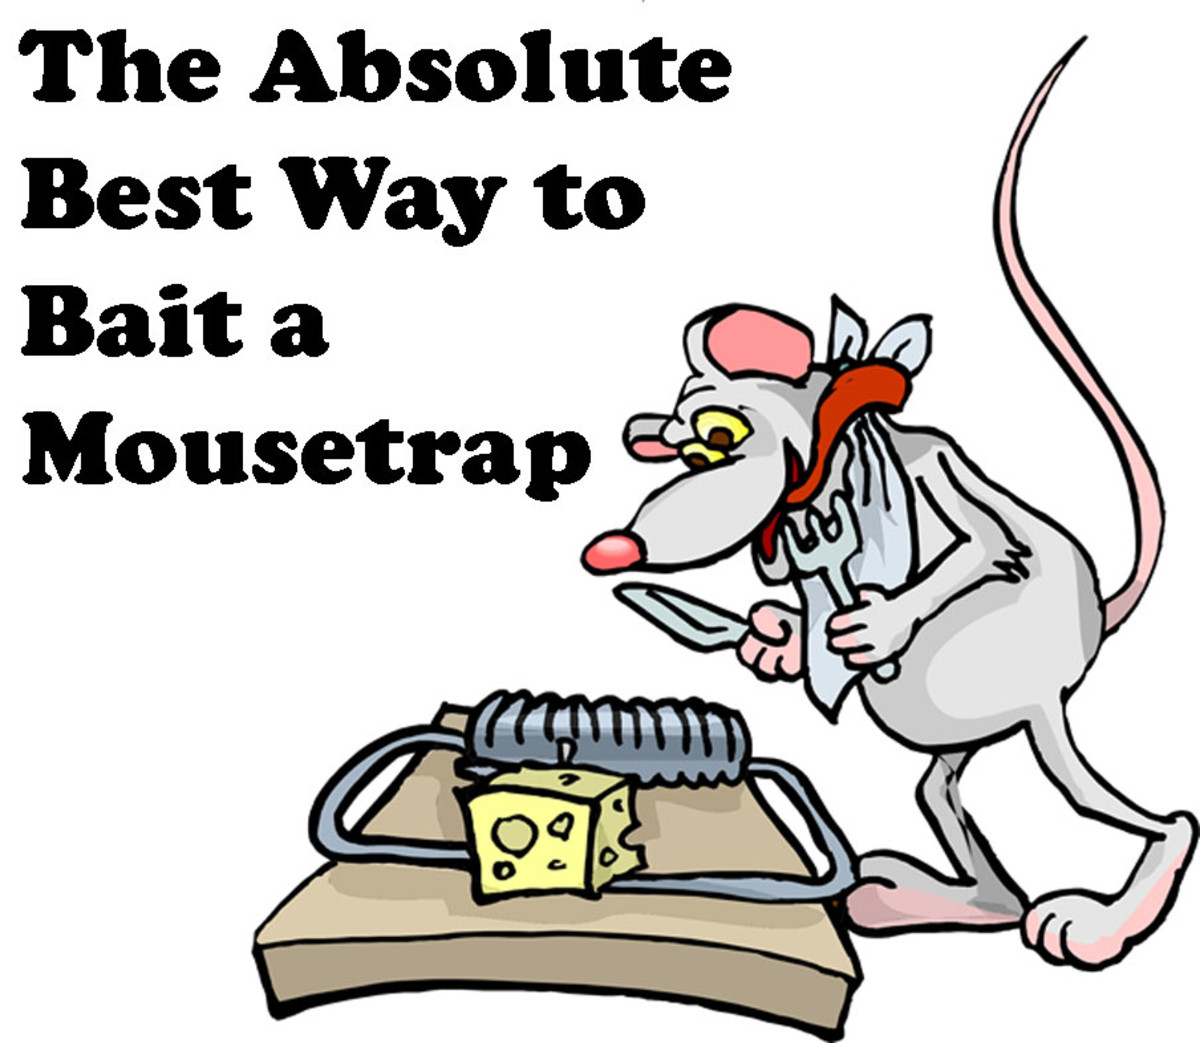 The Absolute Best Way to Bait a Mousetrap